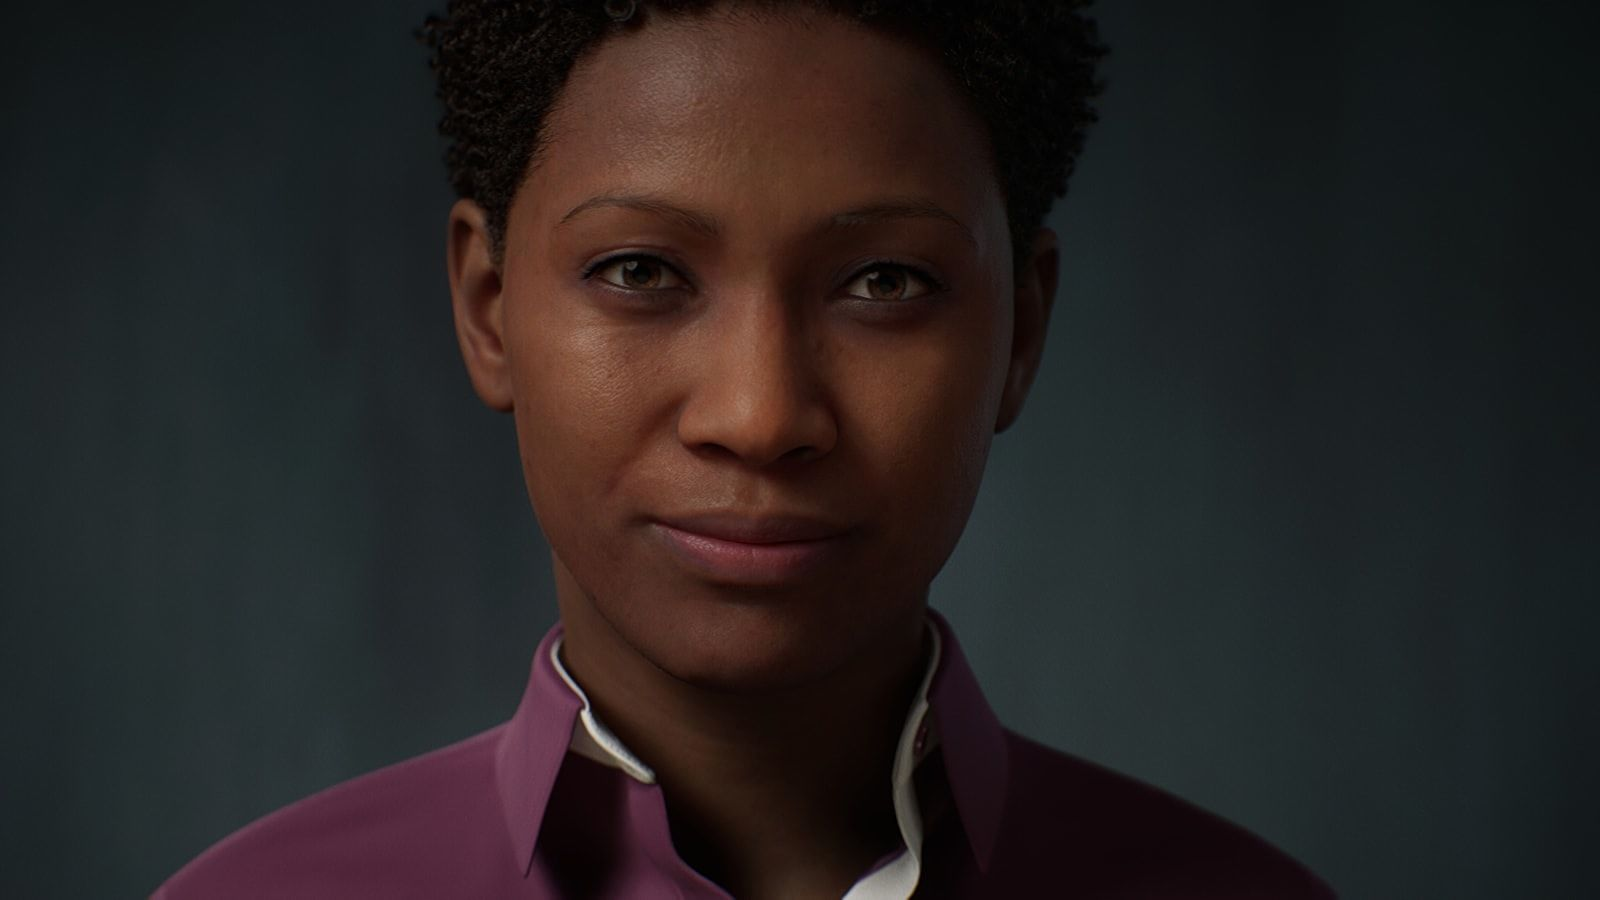 Epic Games are making a character creator with ridiculously realistic faces